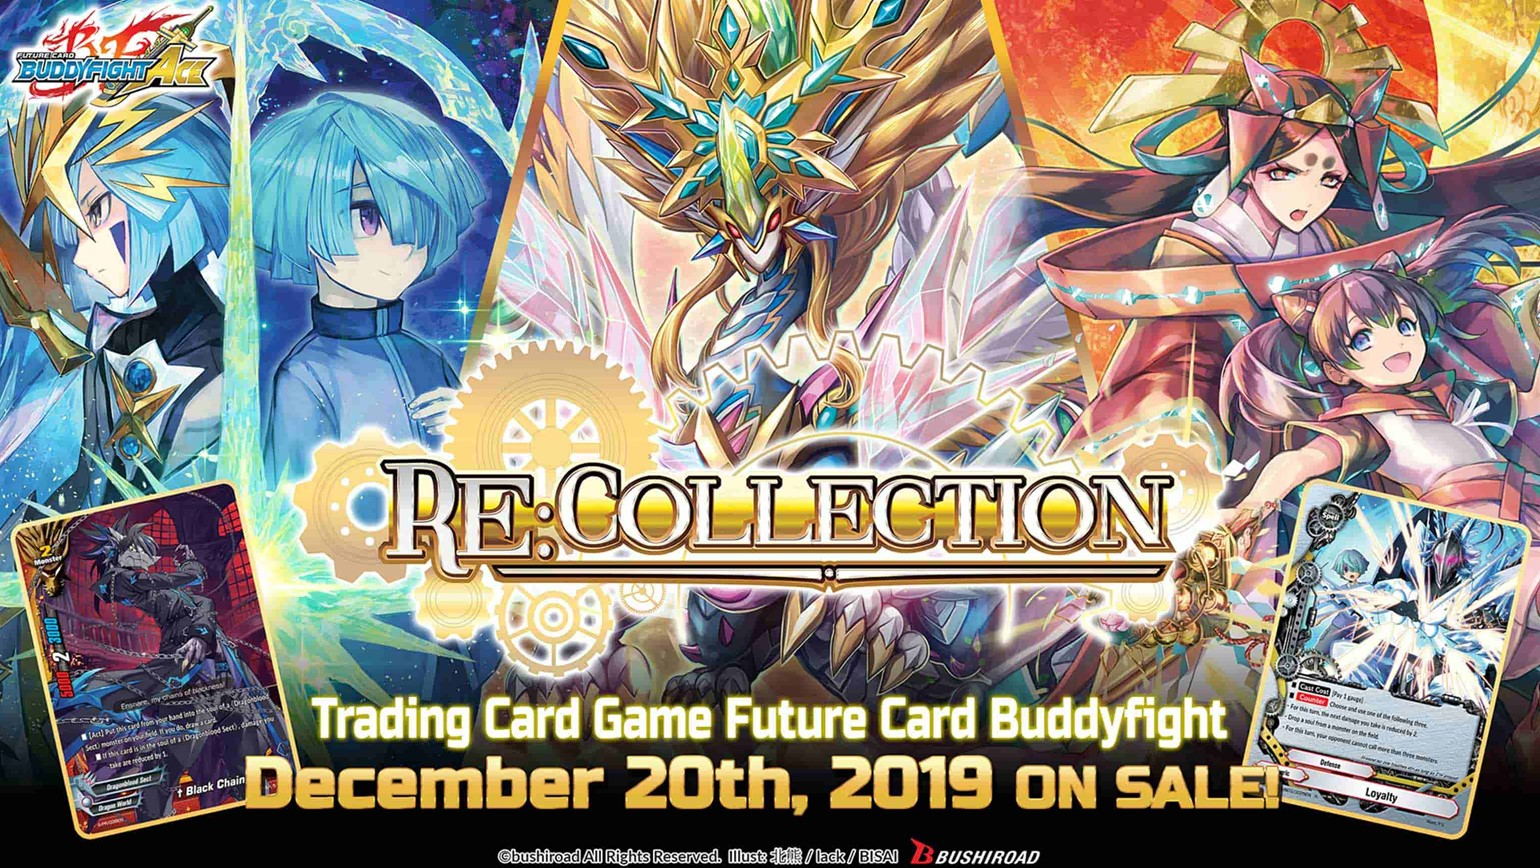 Future Card Buddyfight Ace Re: Collection Vol. 1 Coming December 20th